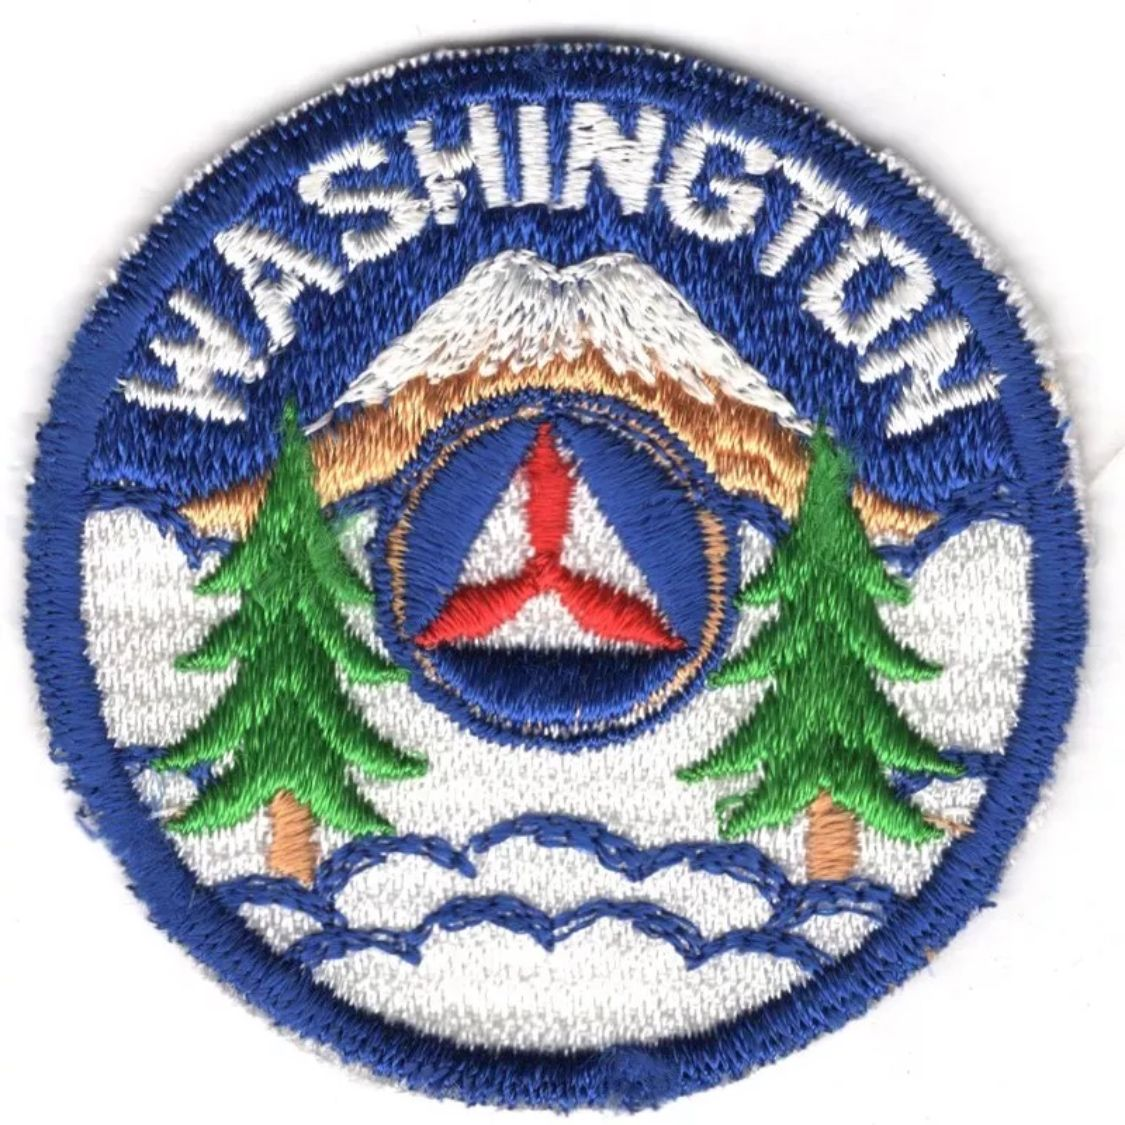 Civil Air Patrol Washington Wing patch 1950s. Civil air